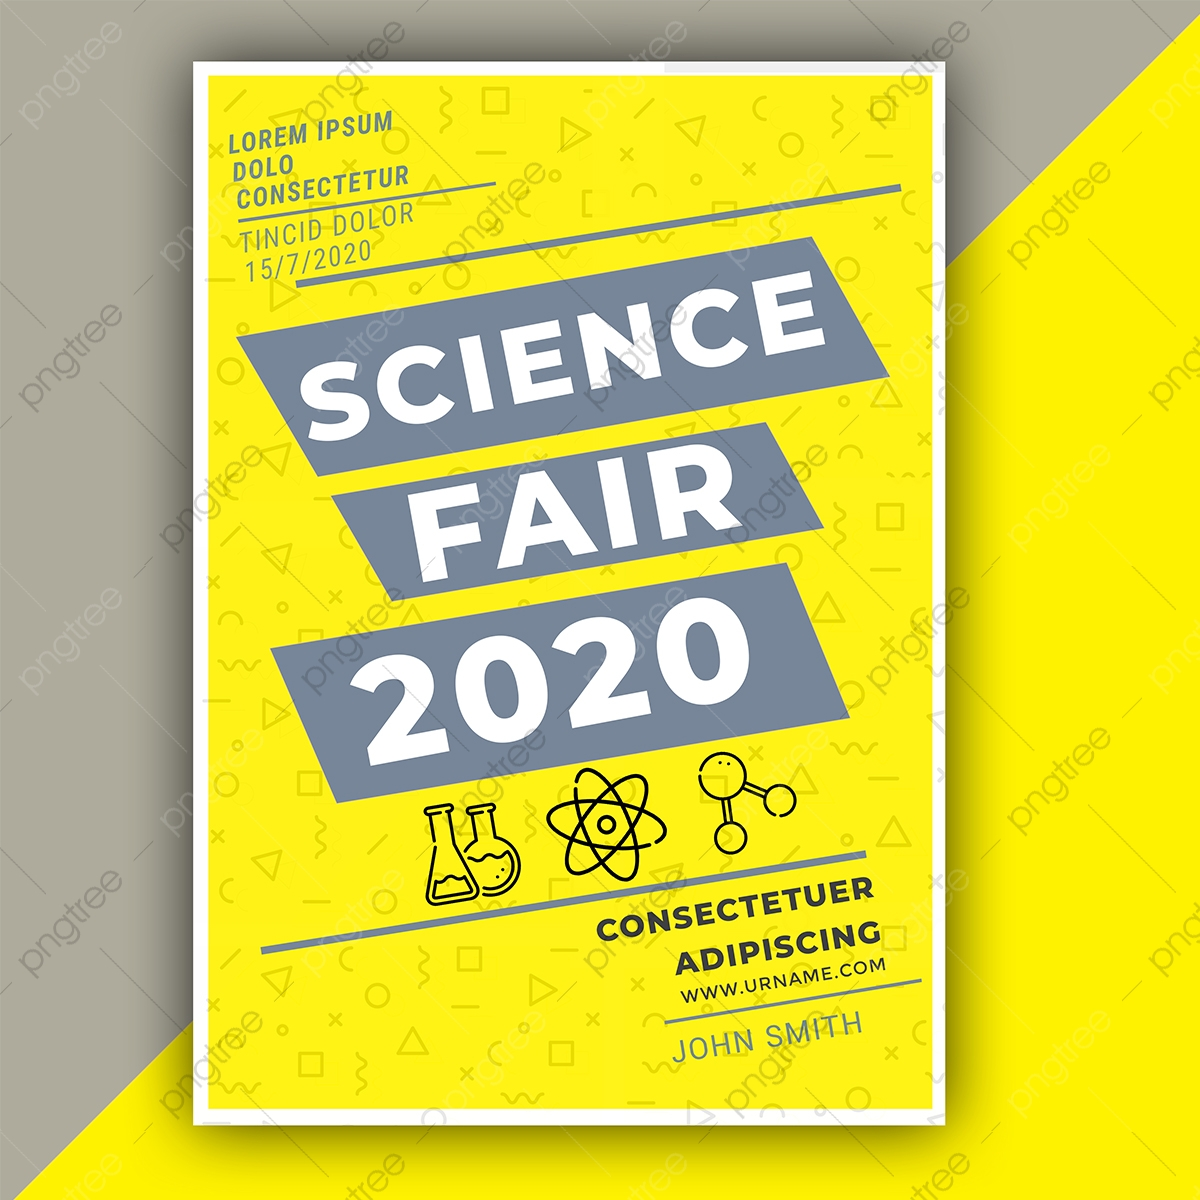 Science Fair 21 Poster Template Download on Pngtree In Science Fair Banner Template